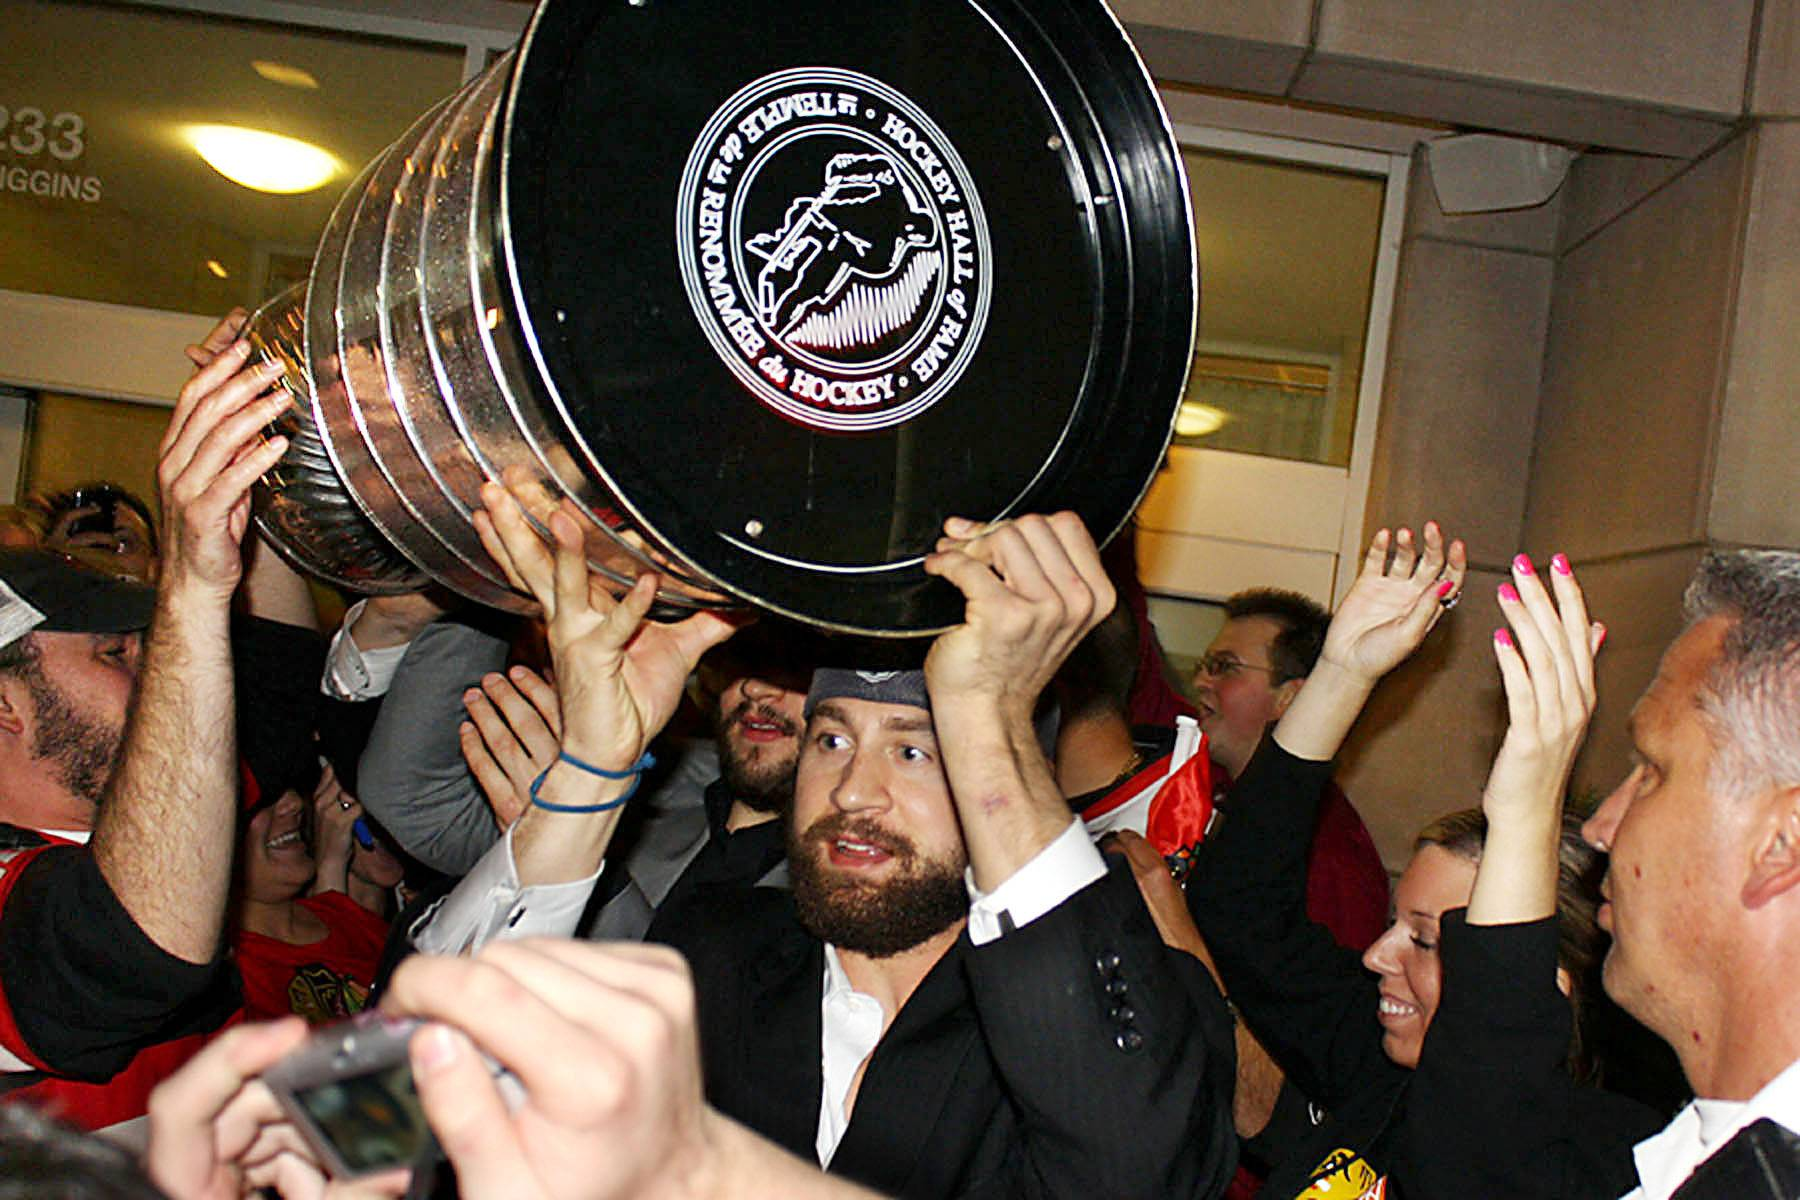 Adam Burish carries the Stanley Cup in 2010 at Harry Caray's Italian Steakhouse in Rosemont.